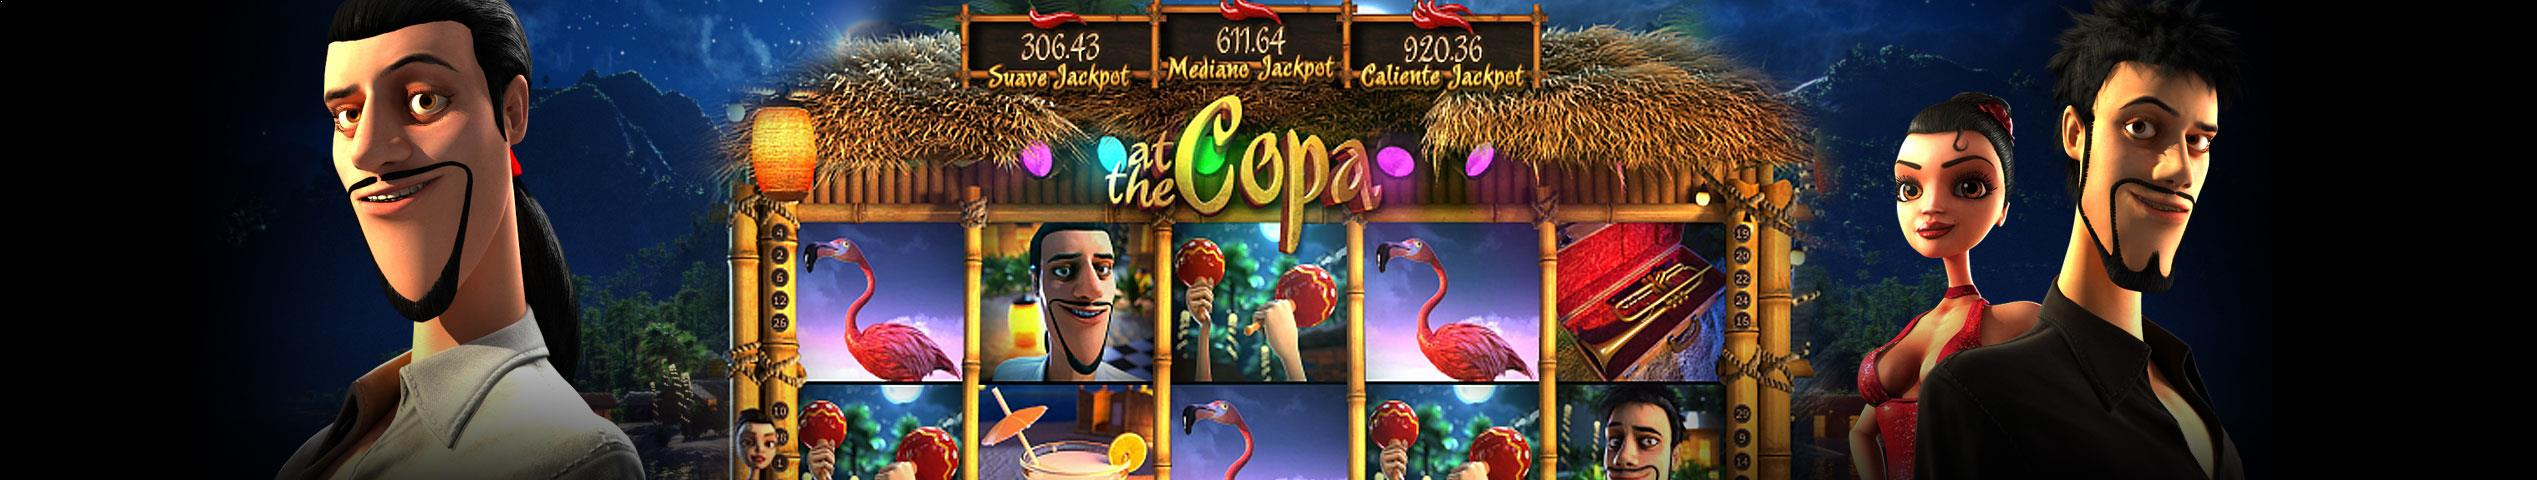 At the Copa Multa Baft jocuri slot slider Betsoft